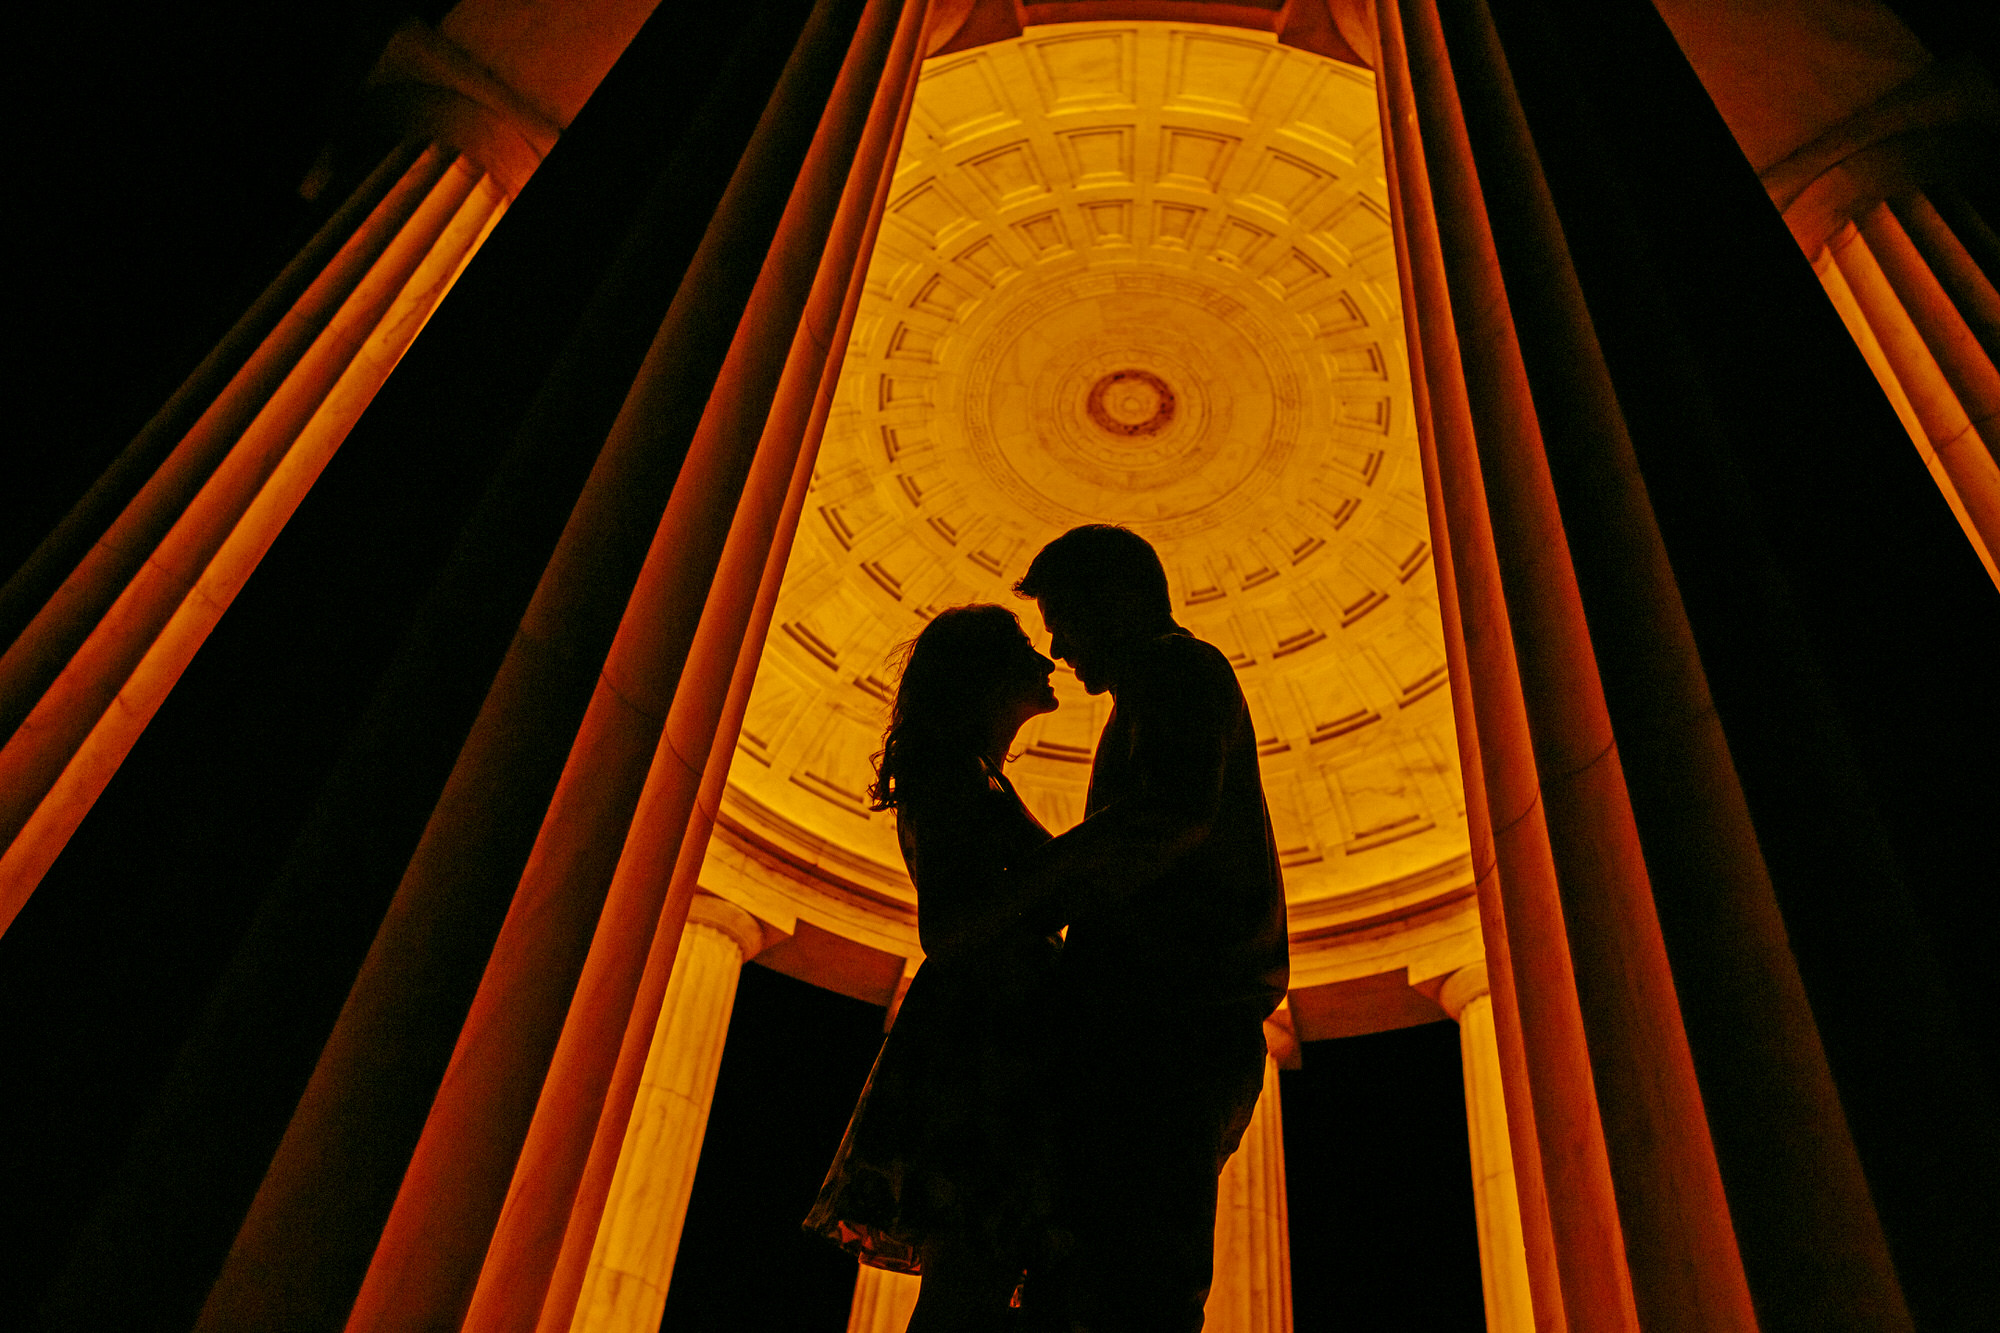 Silhouette of couple within classical structure -  photo by Ken Park